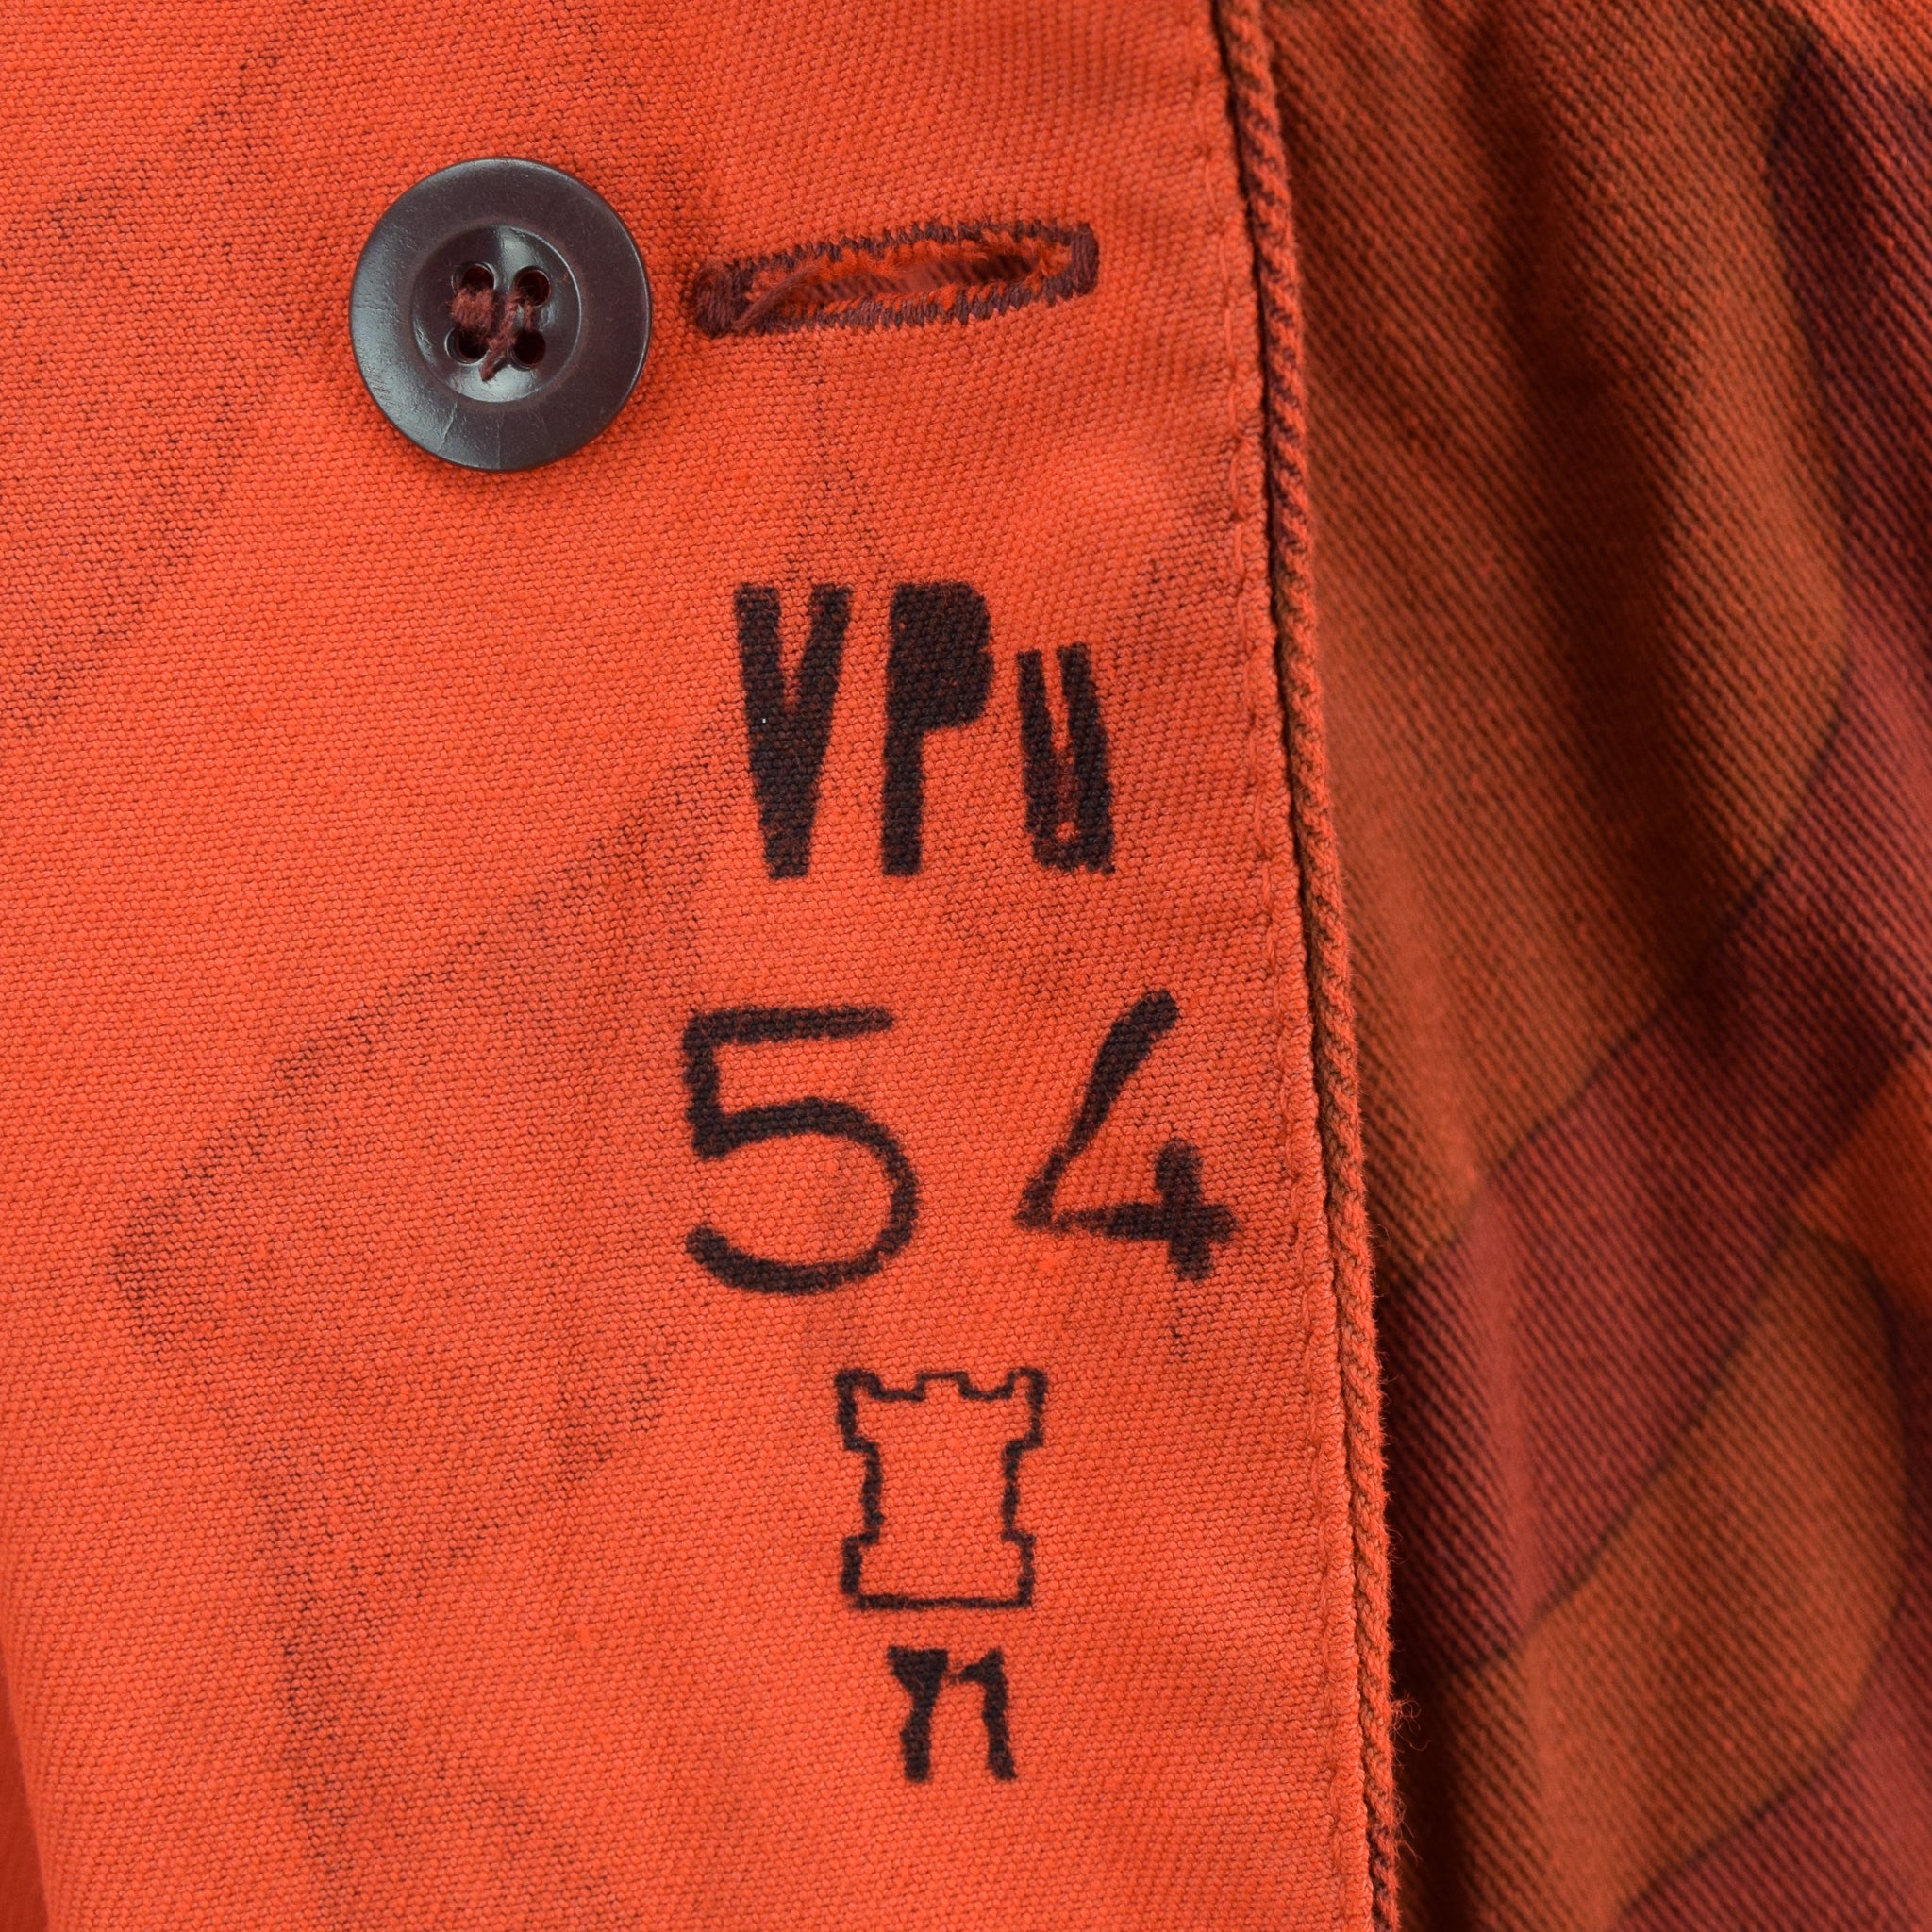 Vintage 70s Military Finnish Army Orange Overdyed Camo Mountain Field Jacket XL internal print